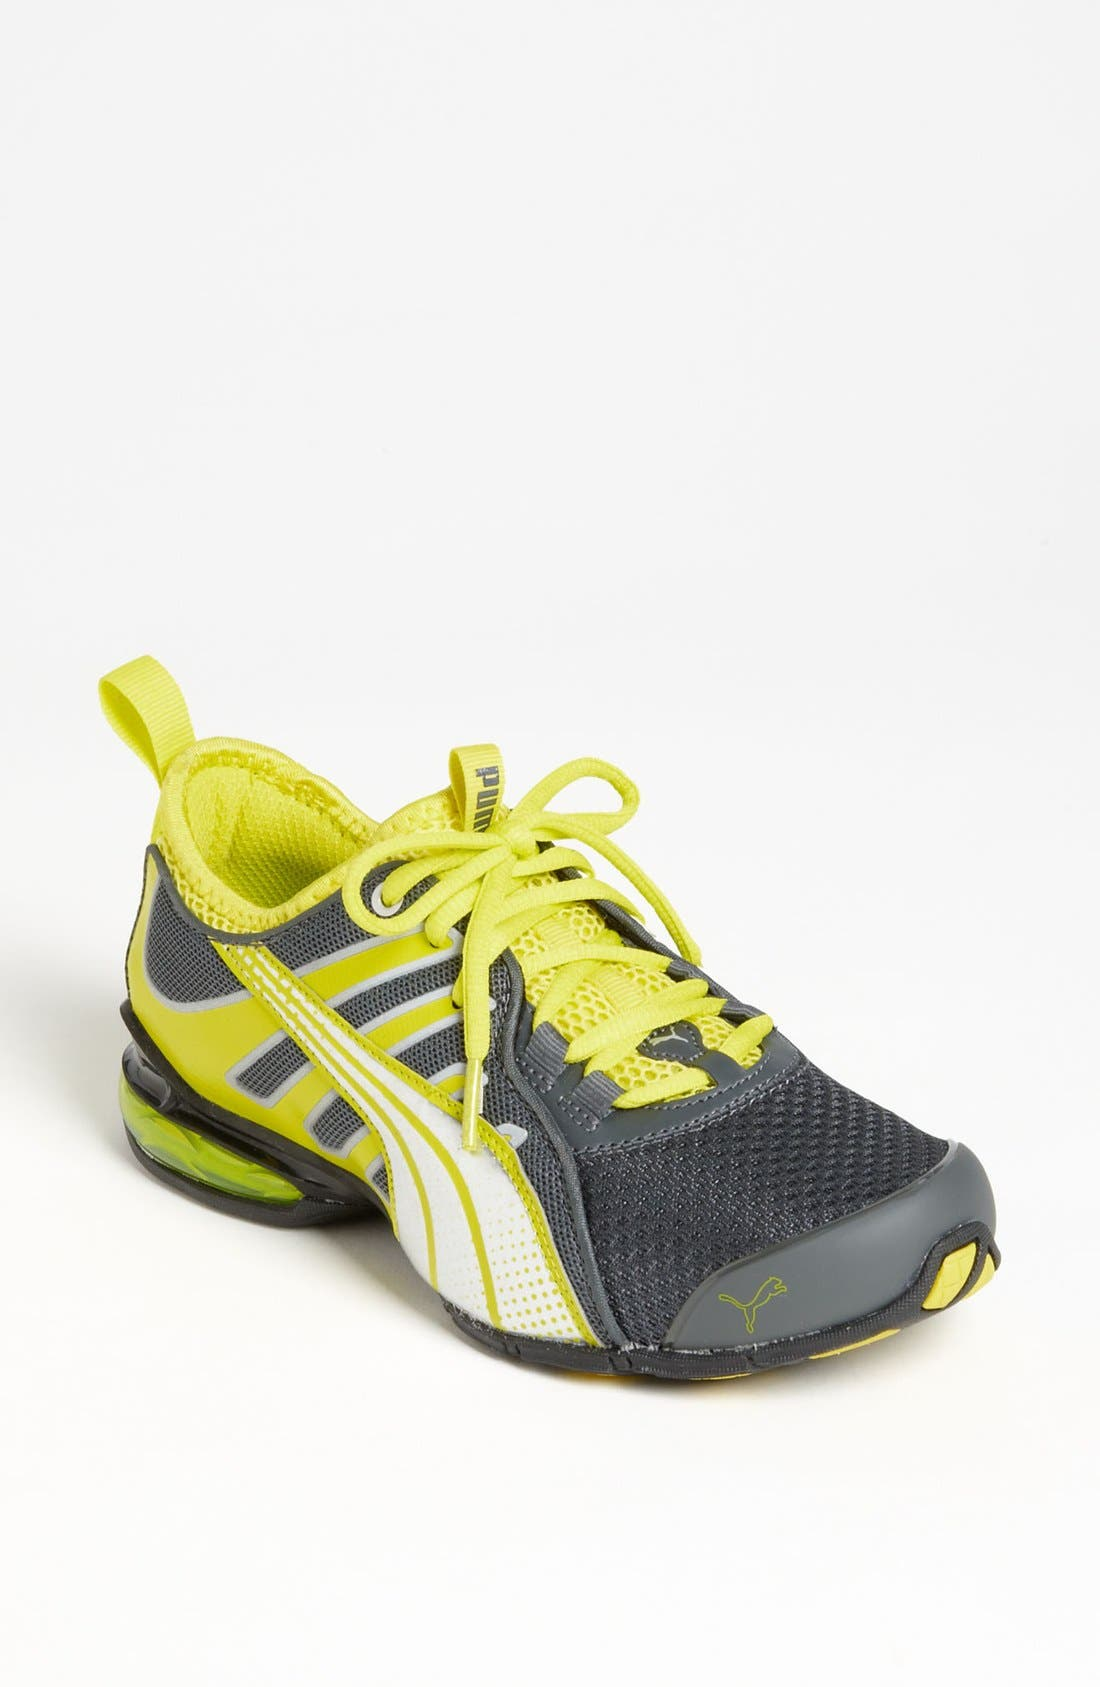 Main Image - PUMA 'Voltaic 4' Running Shoe (Women)